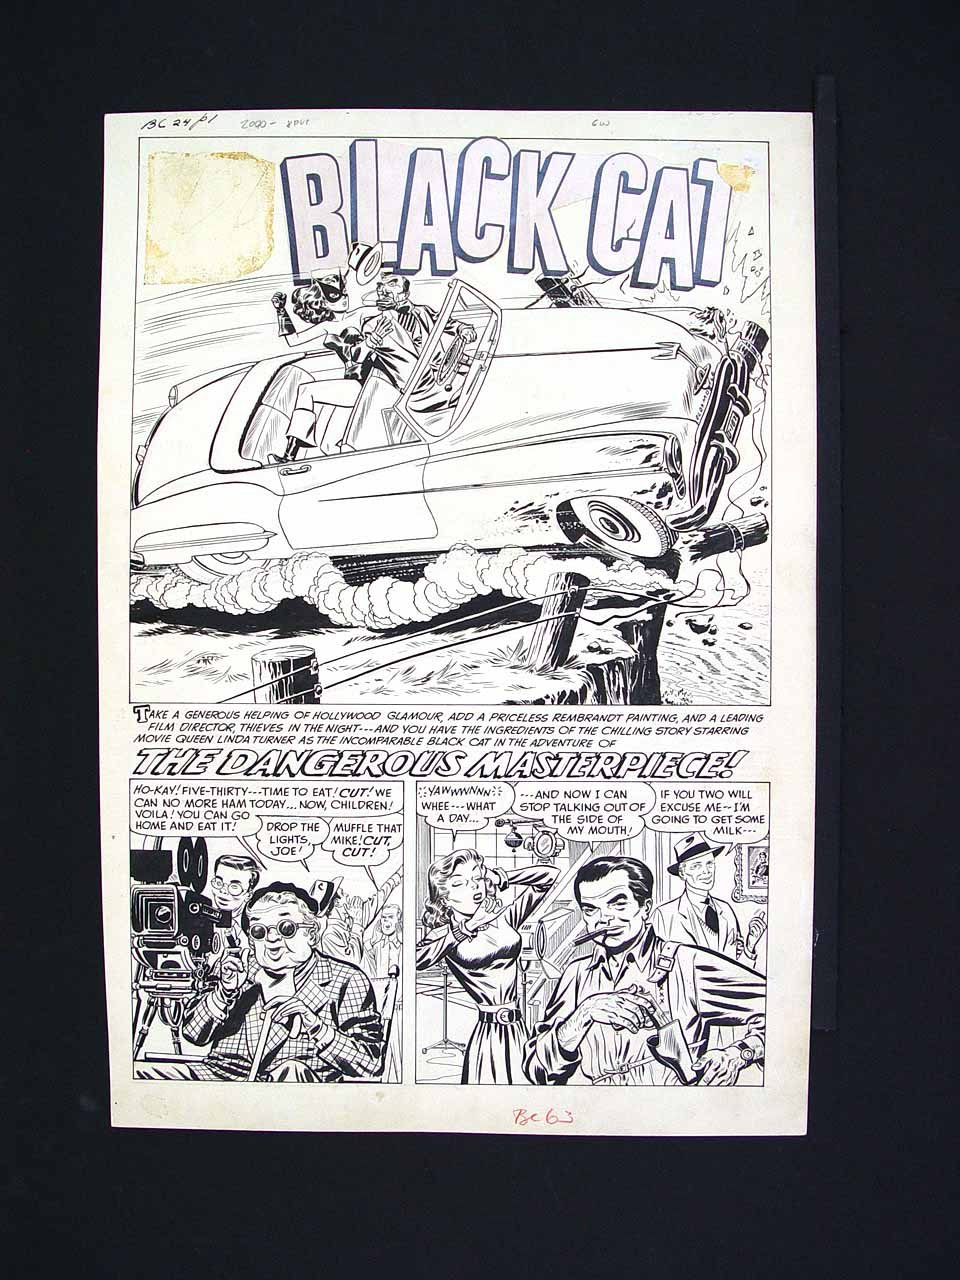 blackcat24_01_elias